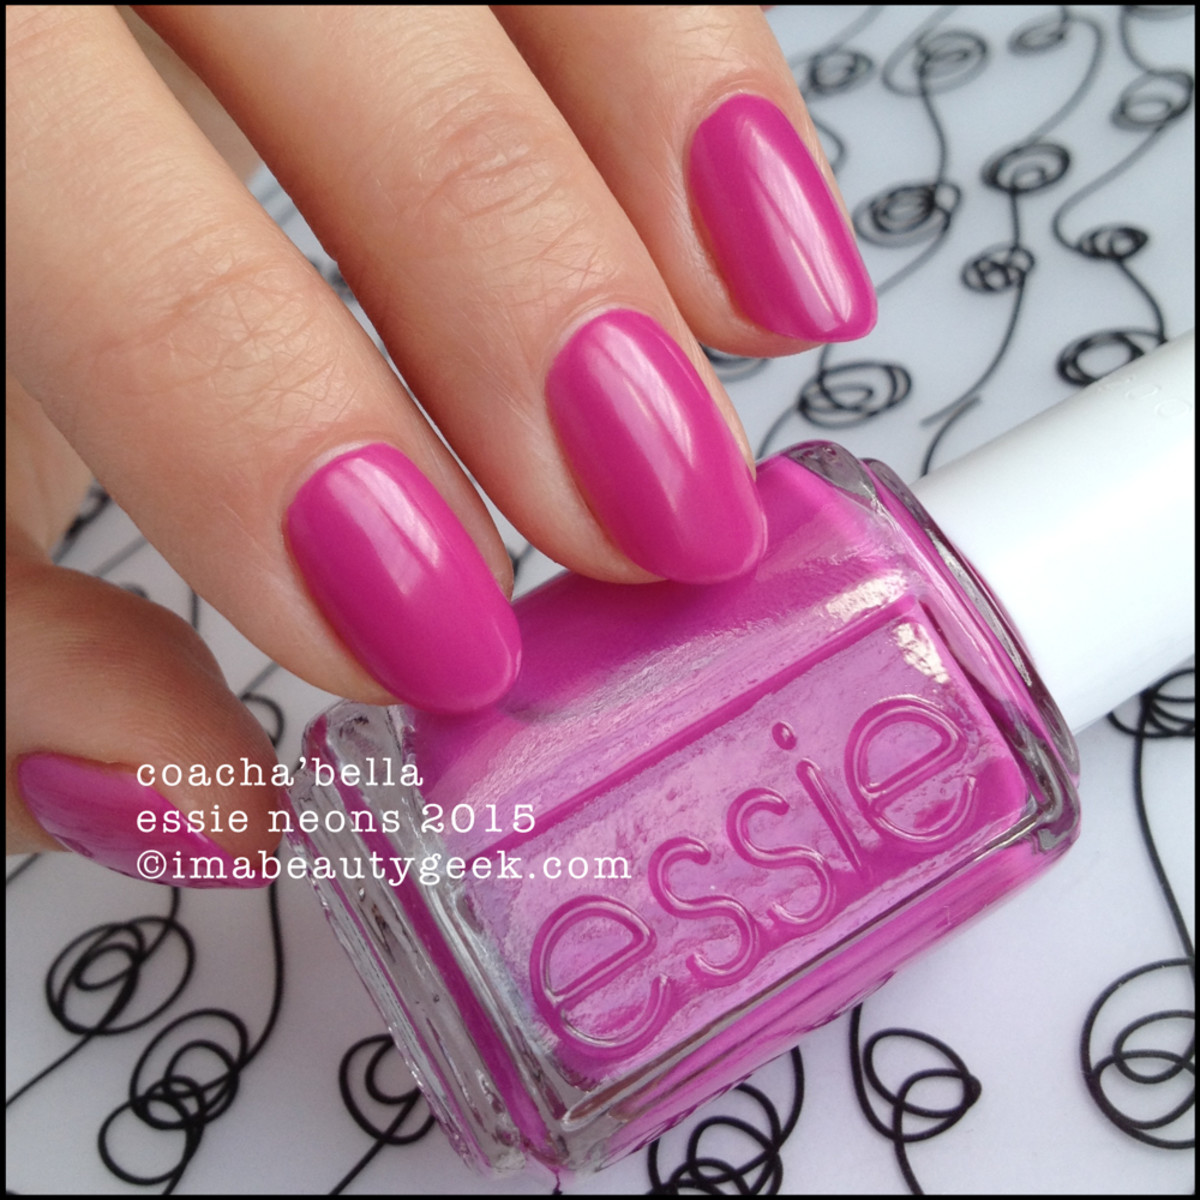 Essie Neon 2015 Collection_Essie CoachaBella Neon